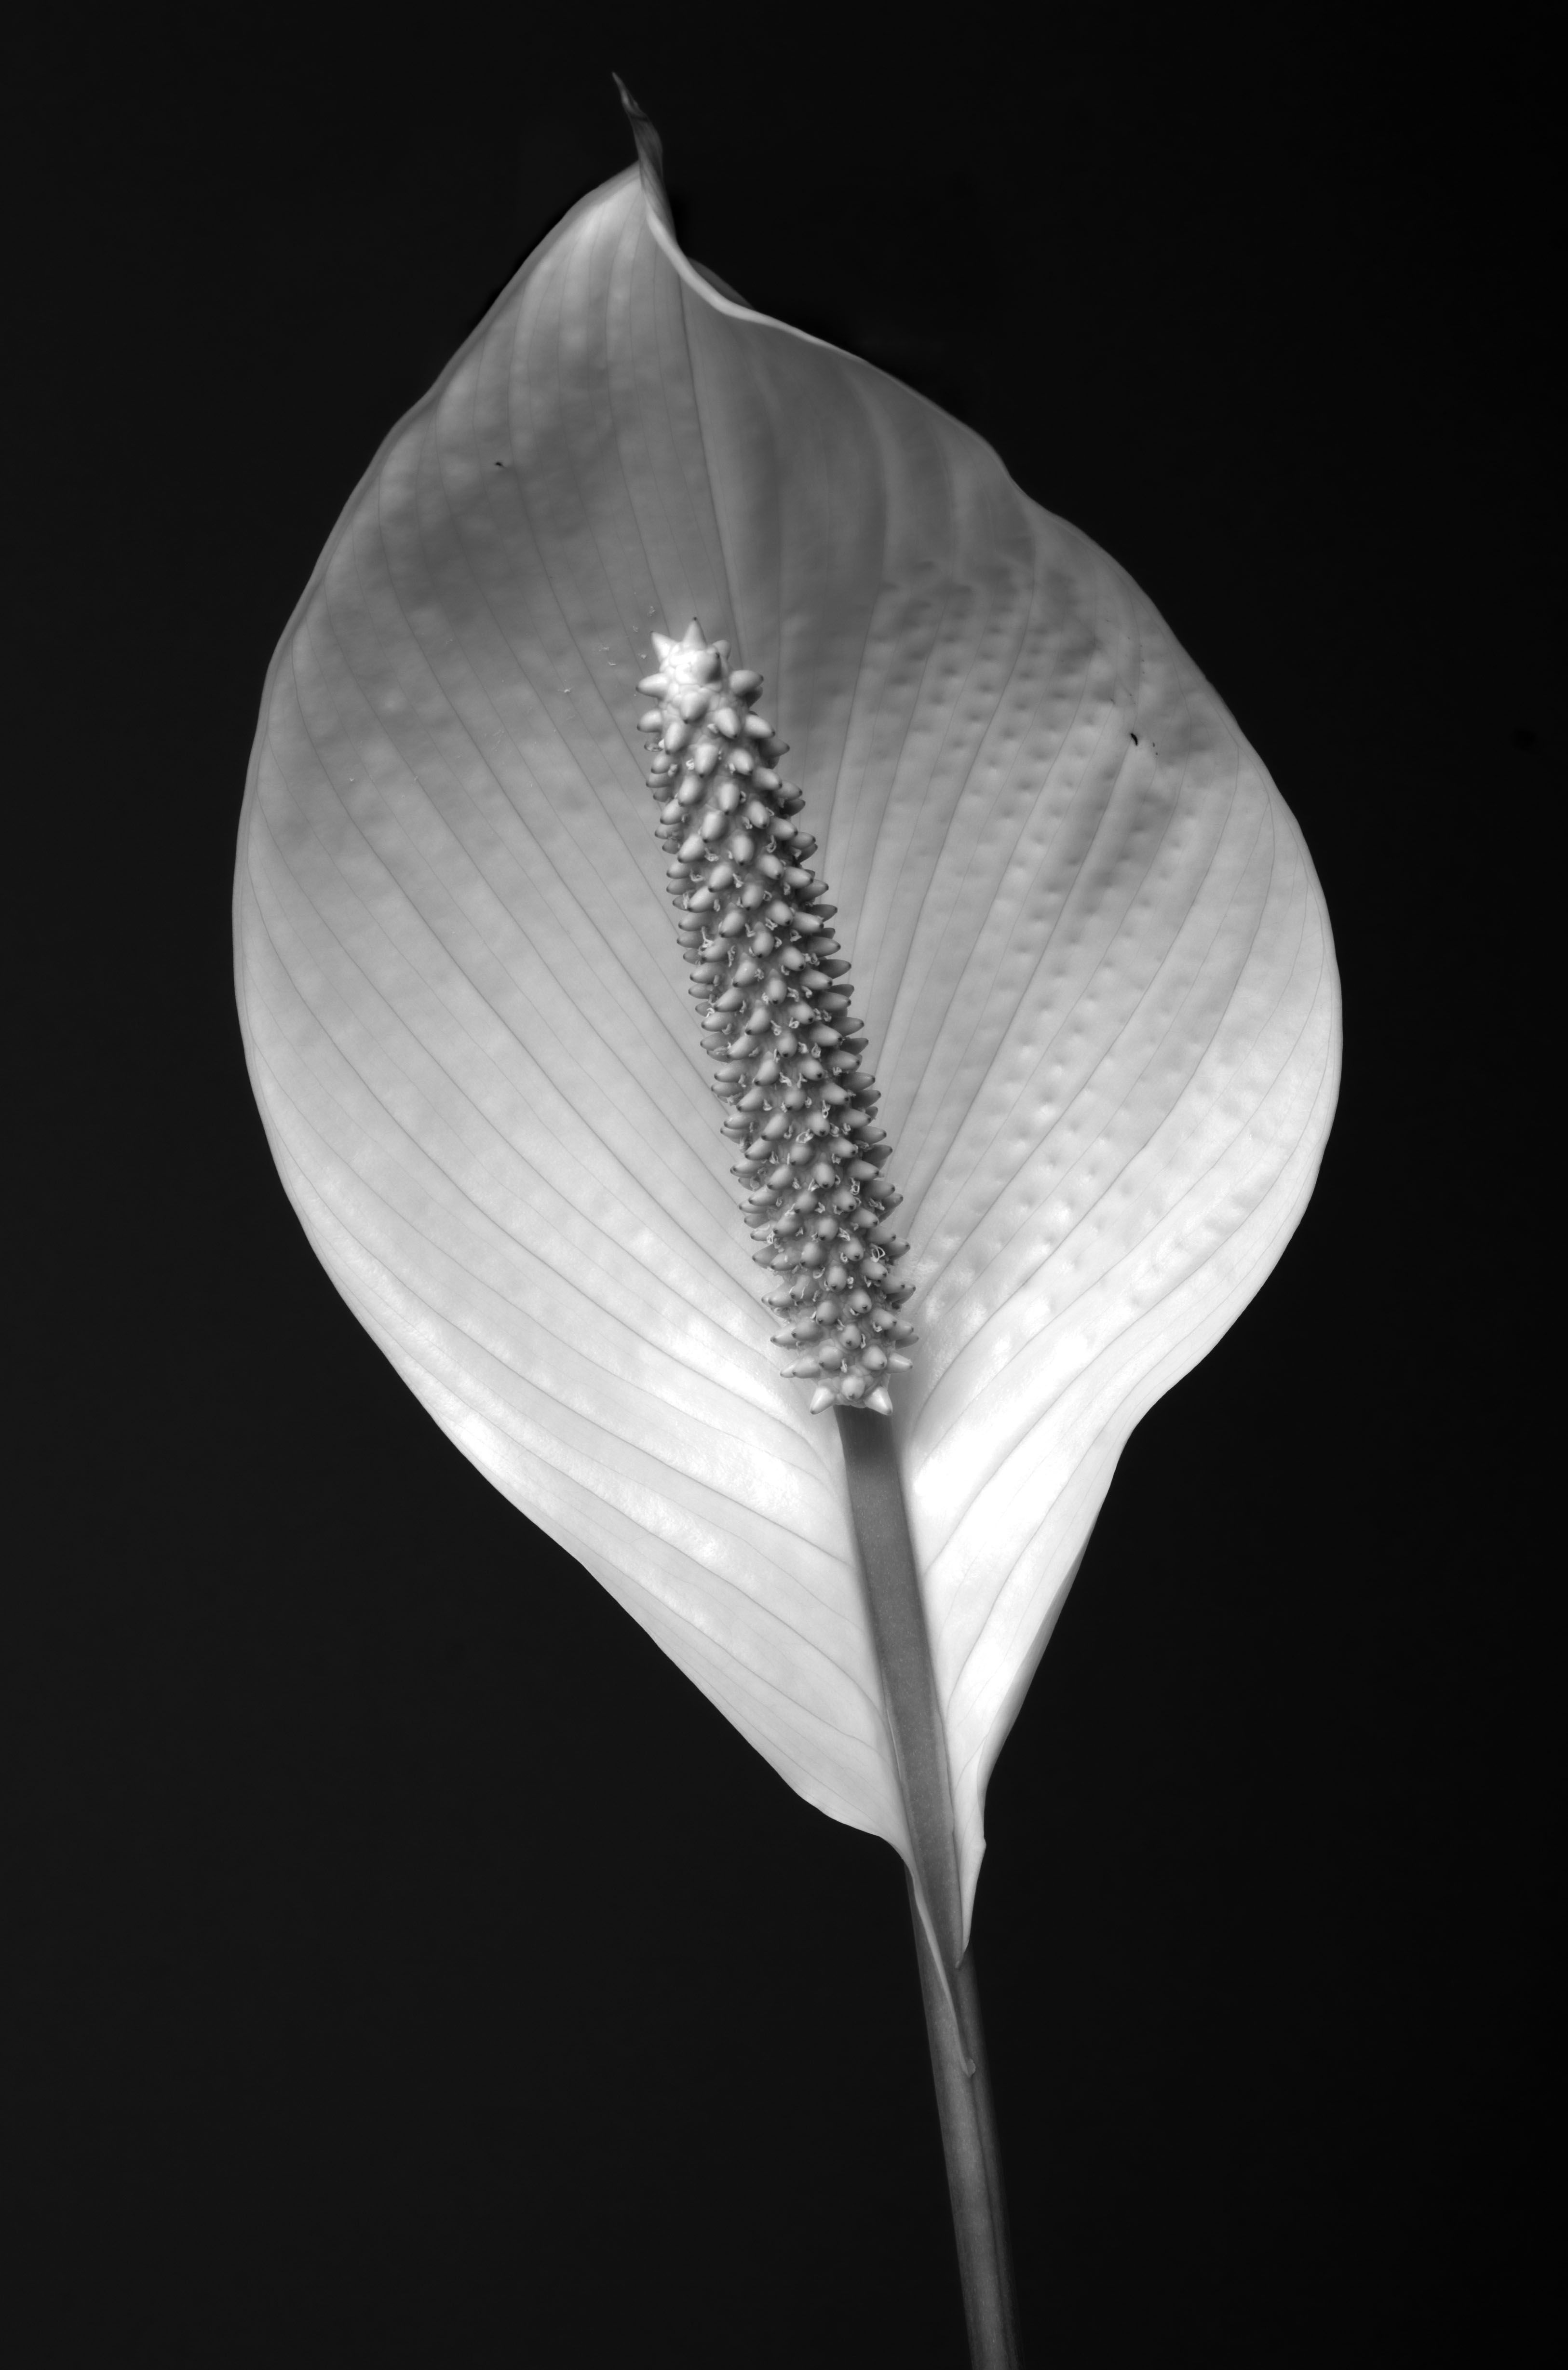 Untitled by Louis Riso inspired by Robert Mapplethorpe